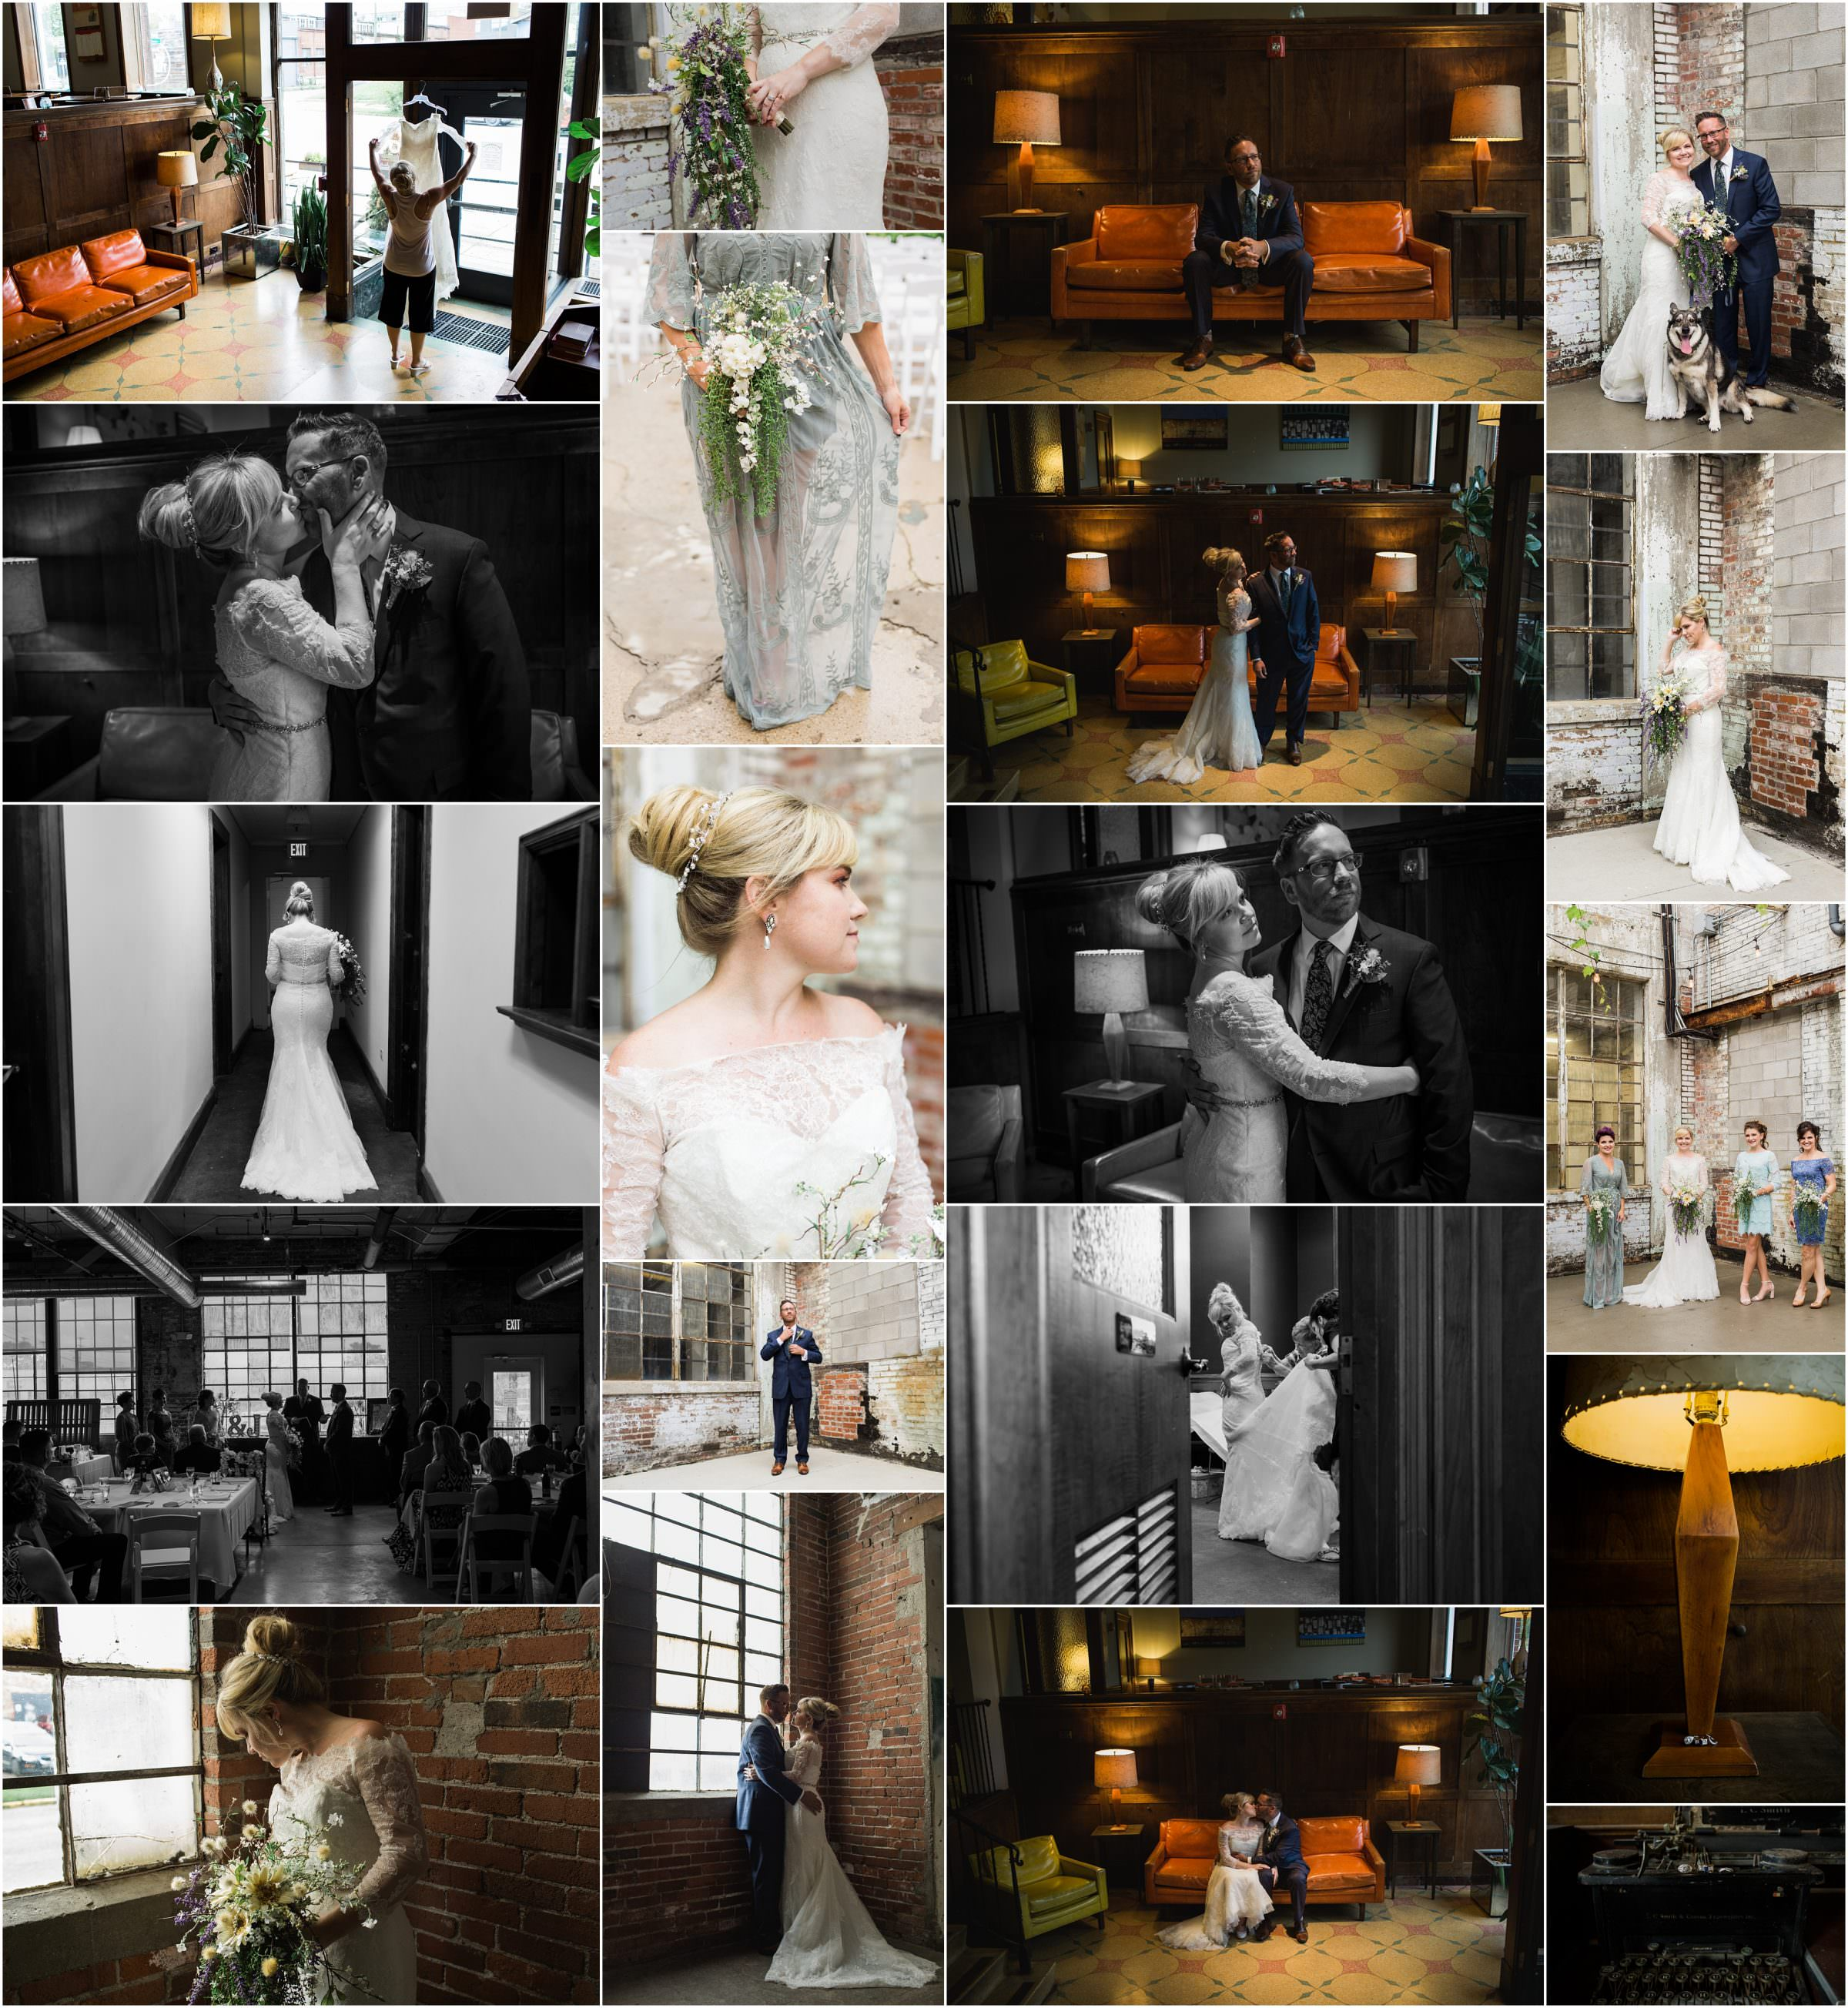 adam lowe photography, wedding photography, fine art wedding, photographer, style, love, fashion, editorial, commercial, strongwater